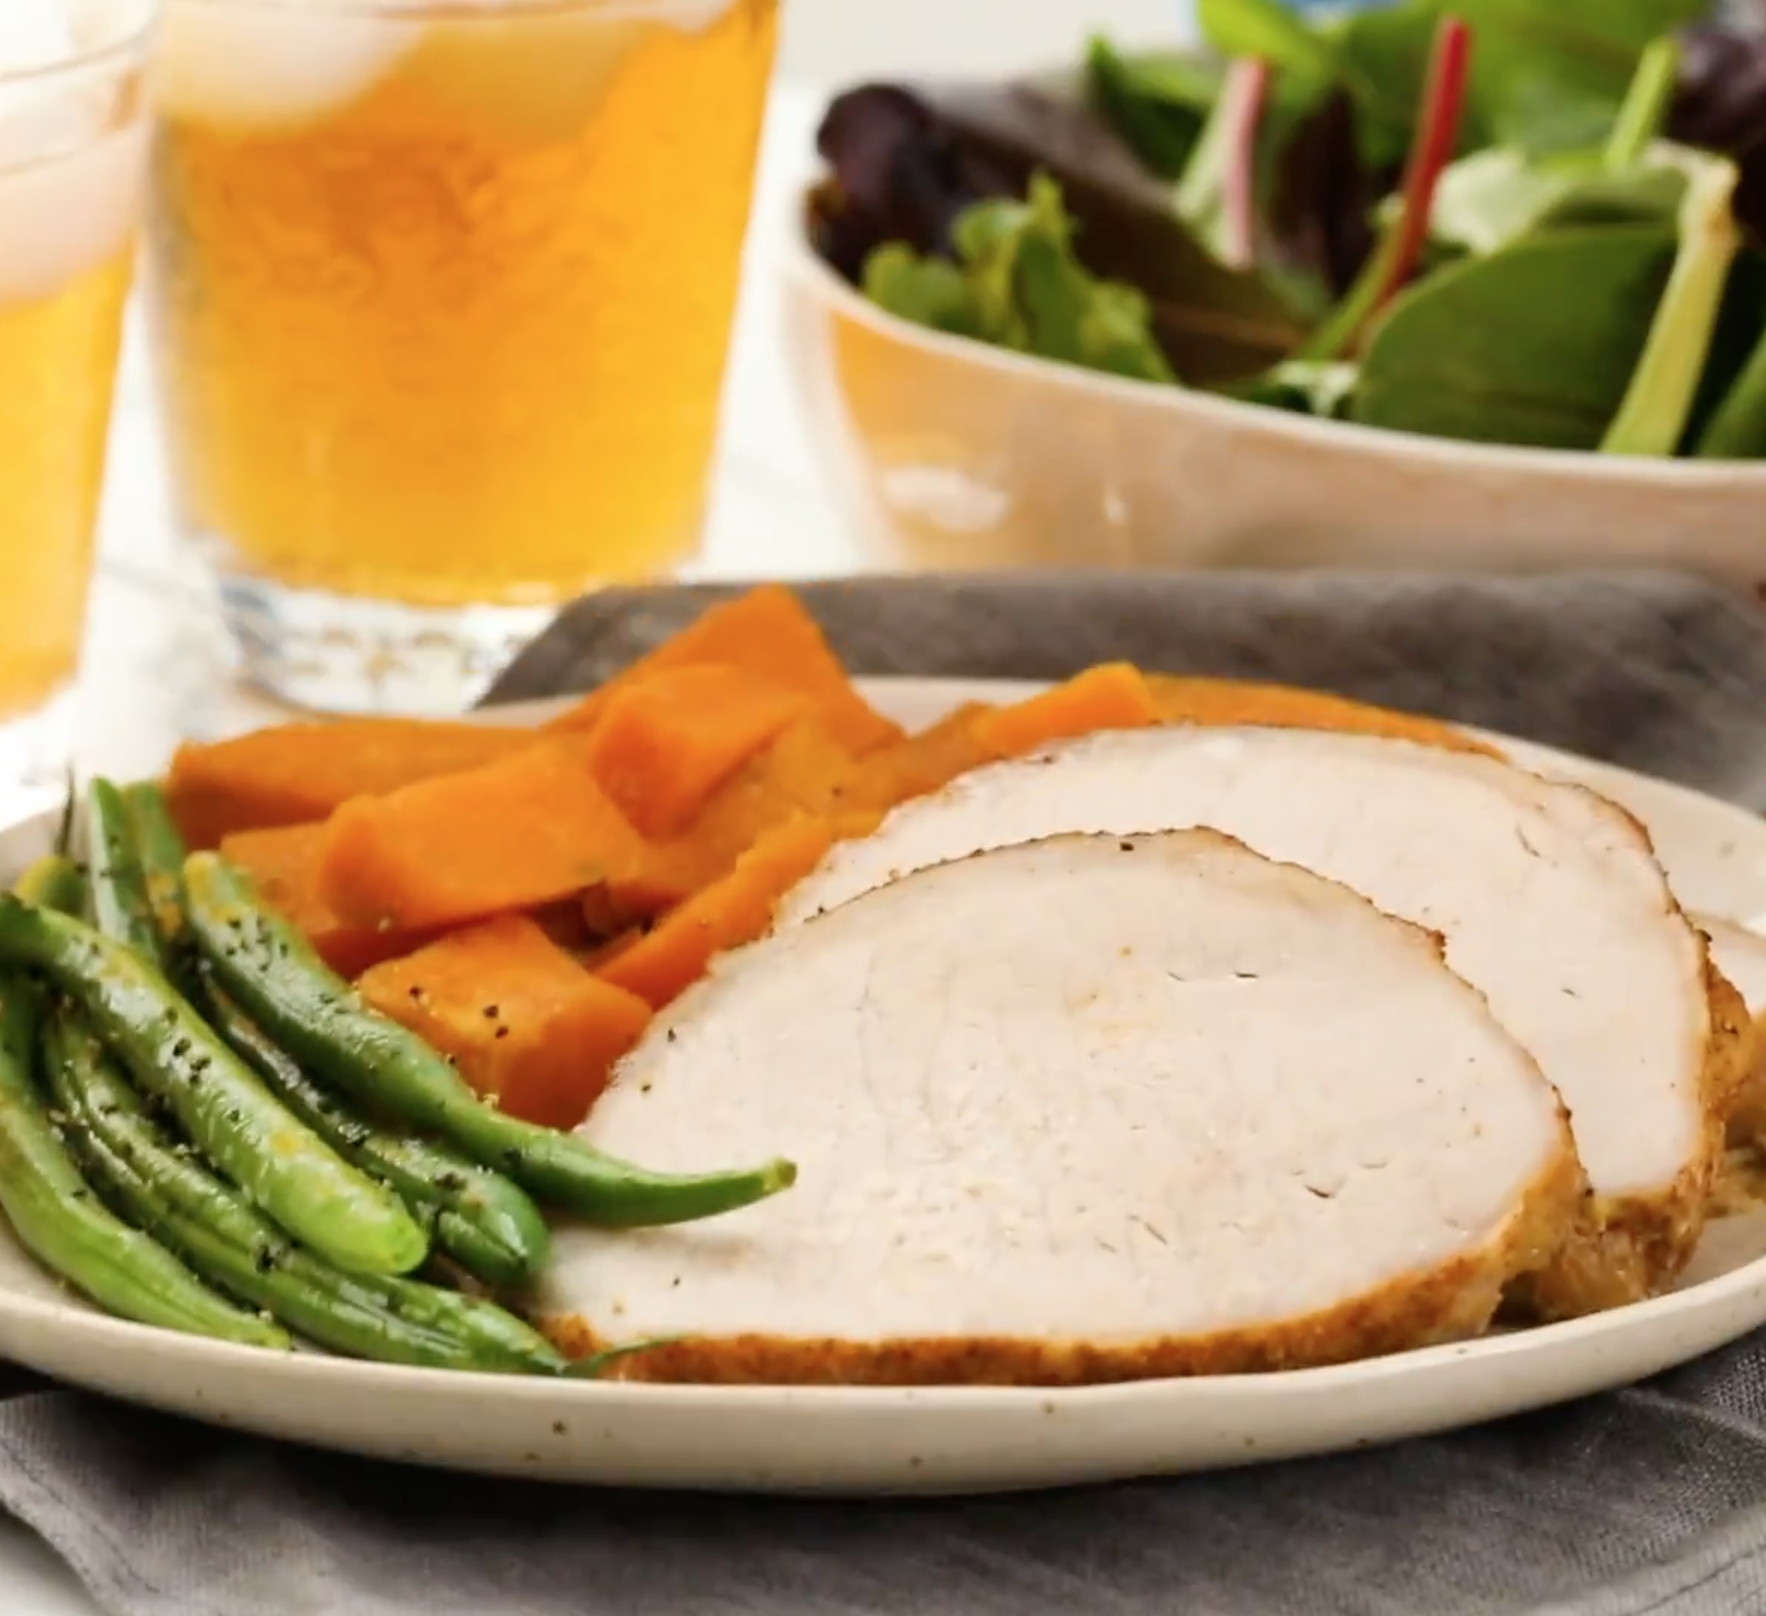 Slow Cooker Pork Loin Roast with Brown Sugar and Sweet Potatoes